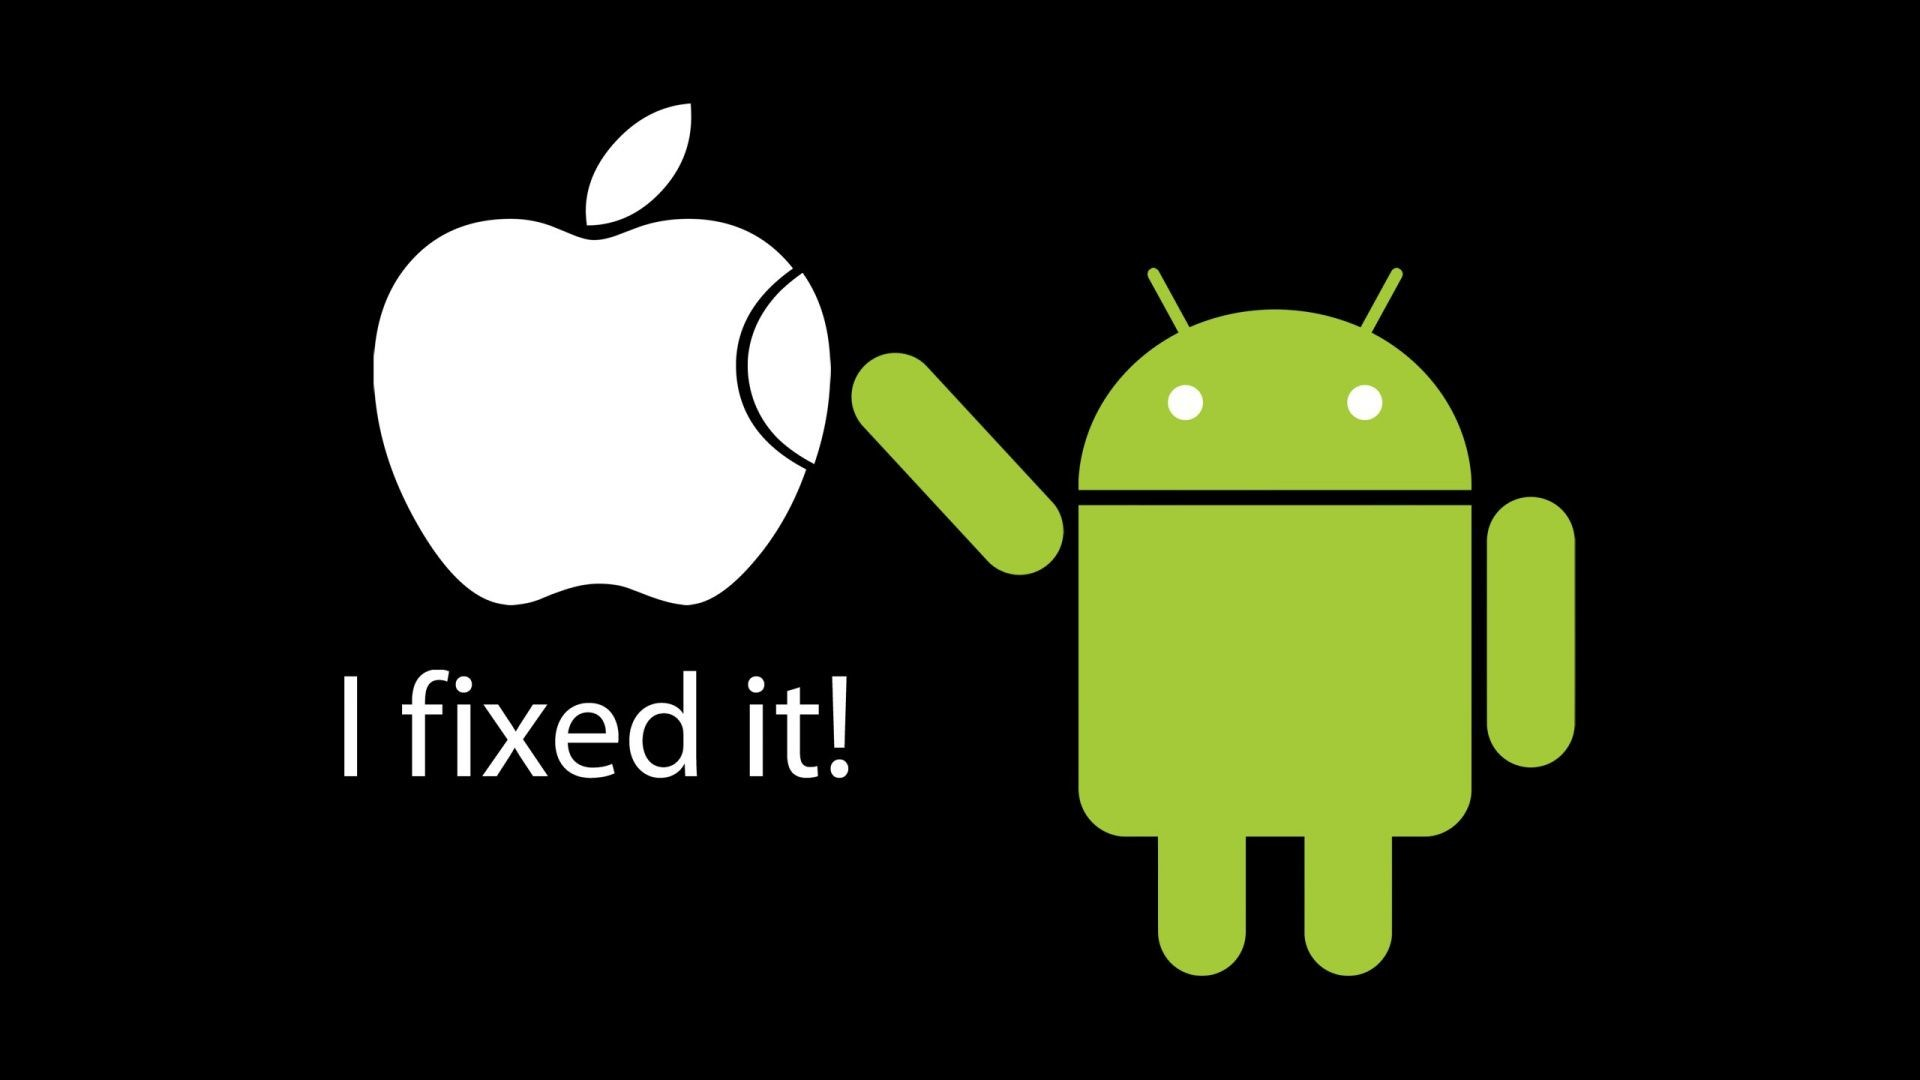 Apple Android Wallpaper 79 Images